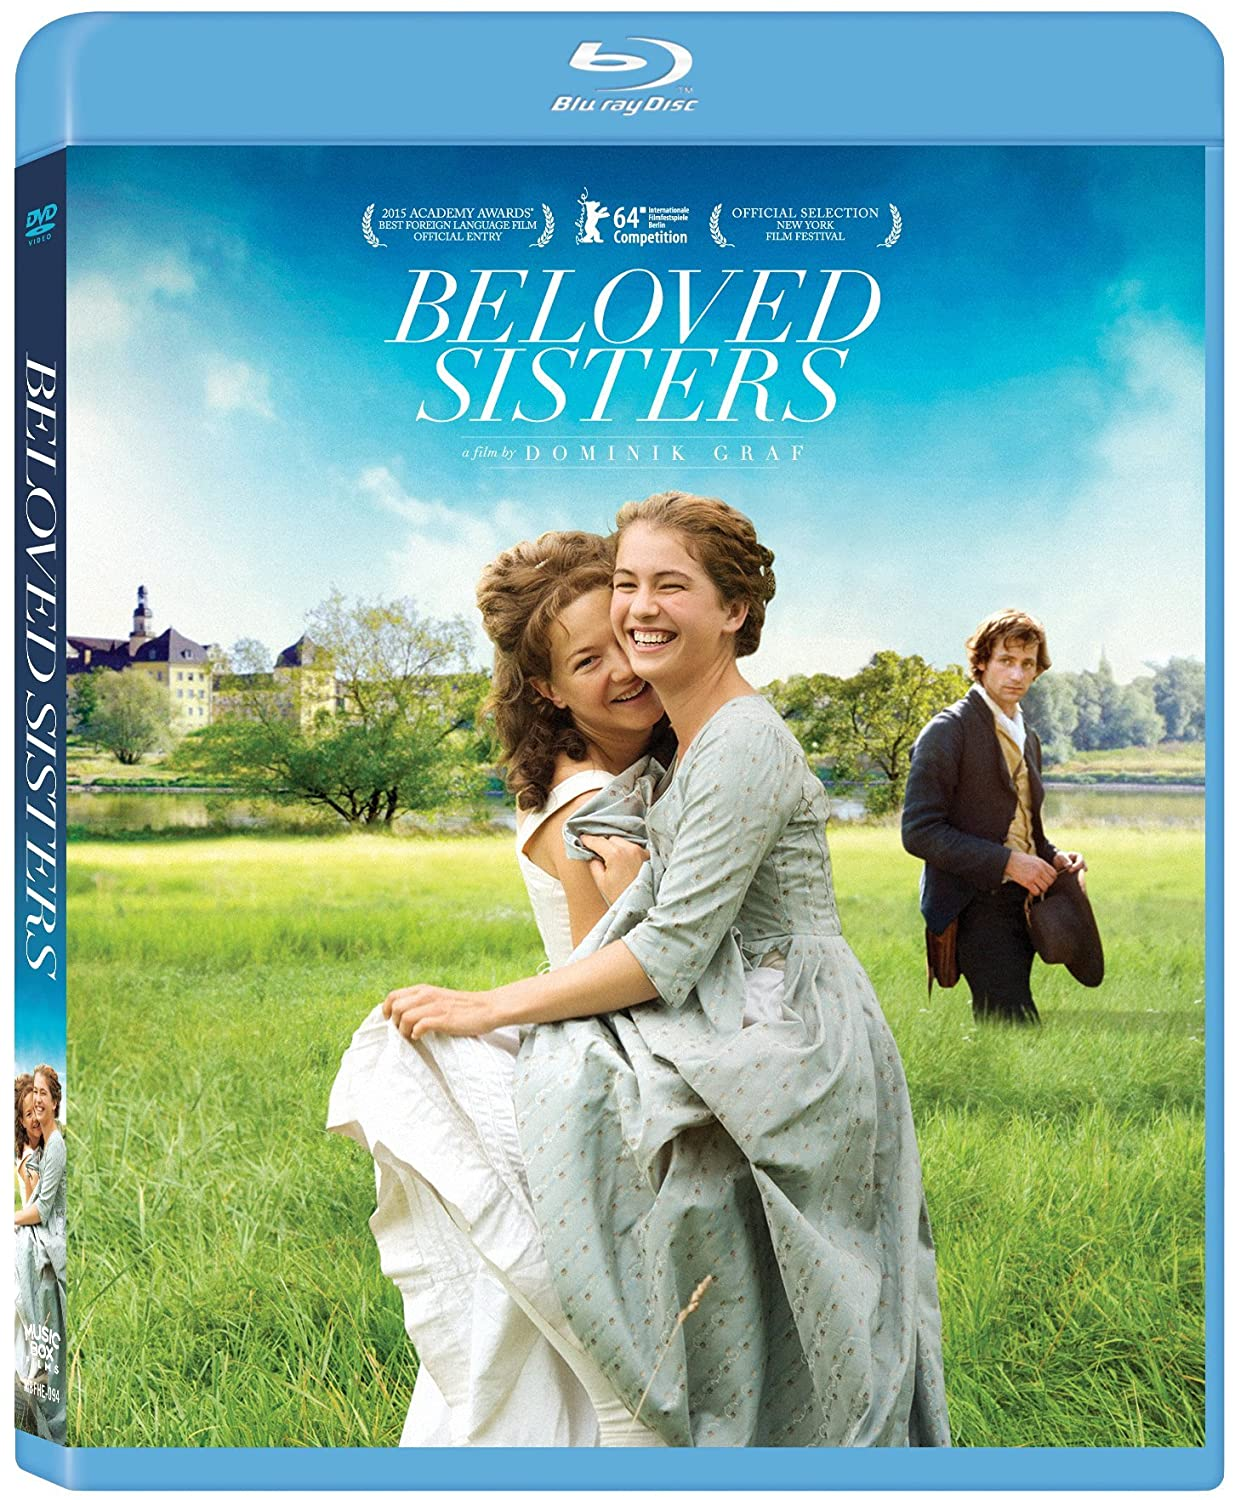 Amazon.com: Beloved Sisters [Blu-ray]: Florian Stetter, Hannah ...